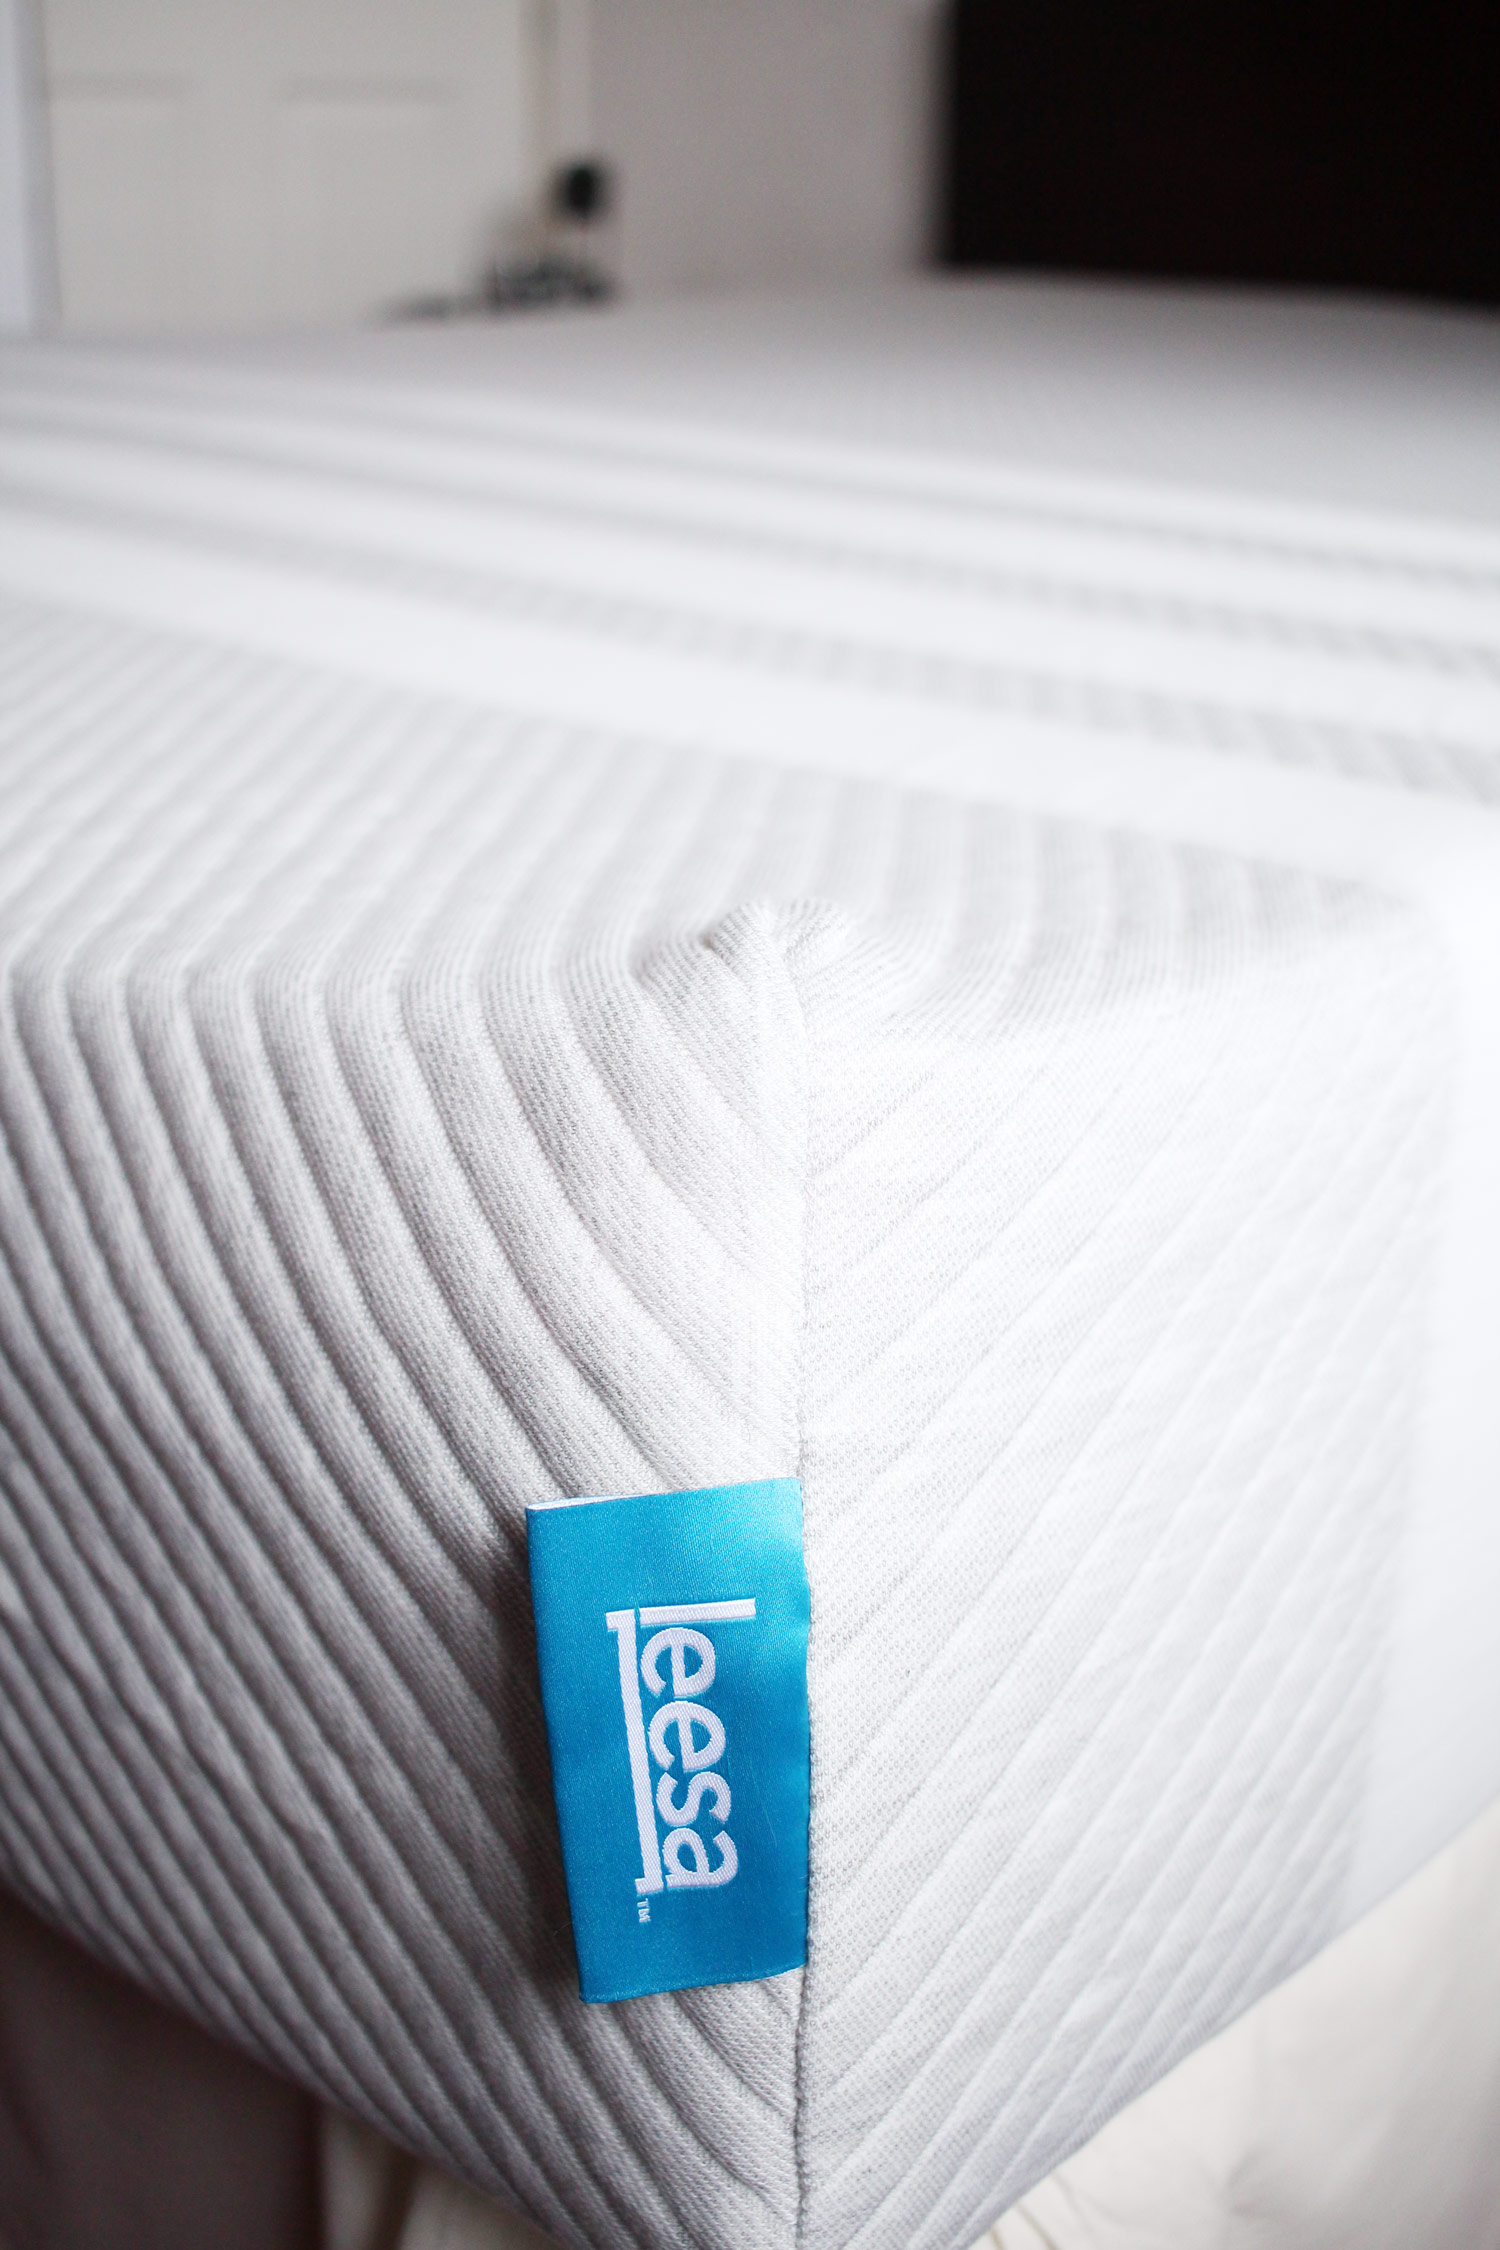 leesa-mattress-review-lifestyle-blogger-5